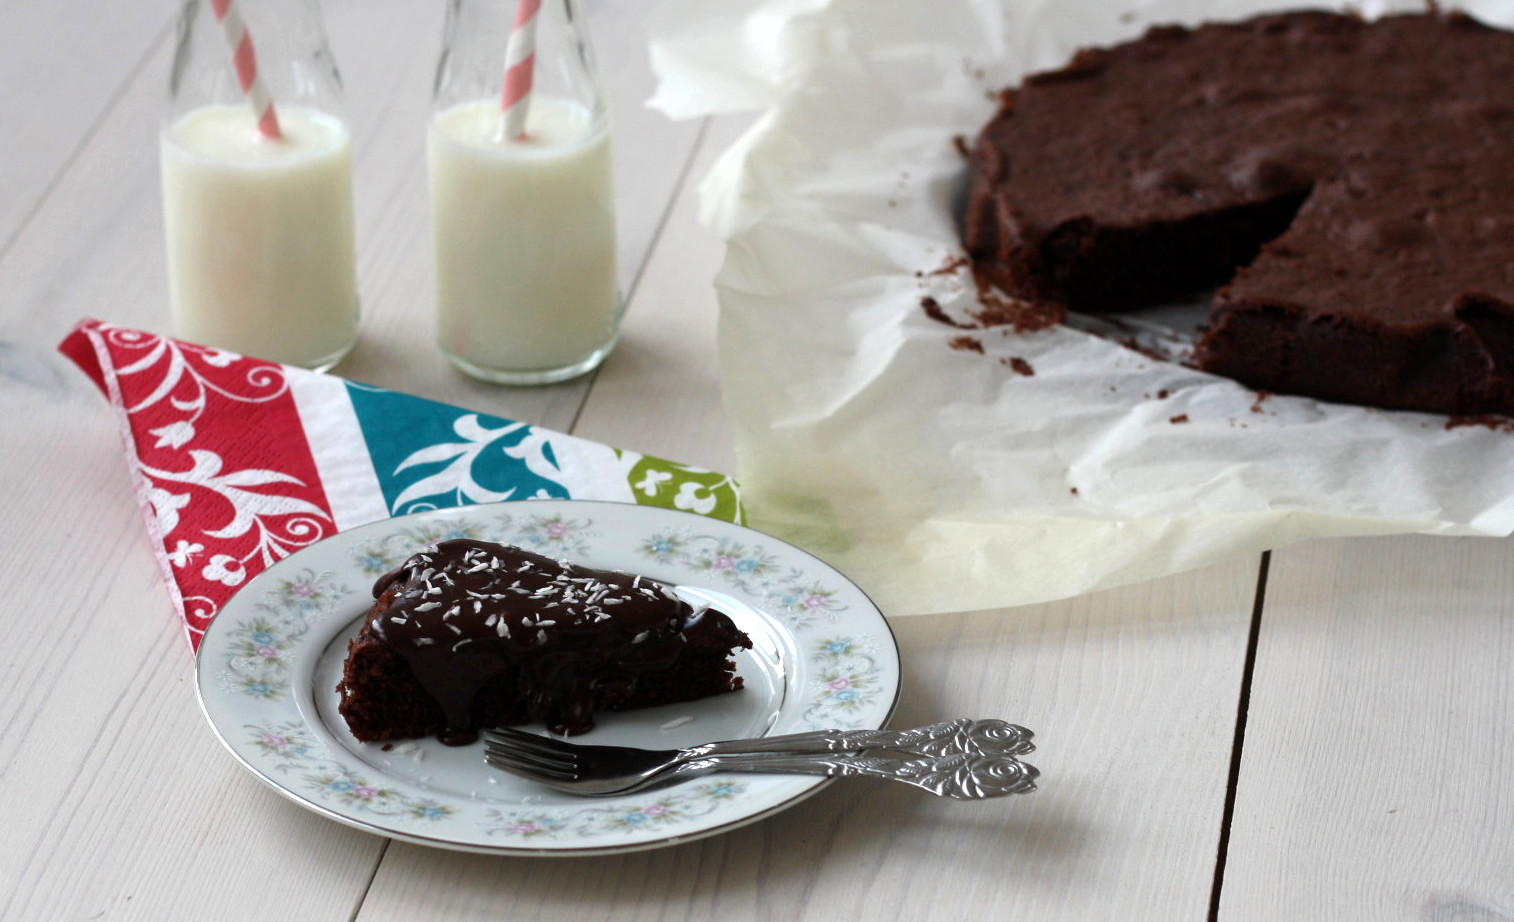 Recipe for Chocolate Cake - Moist and Easy to Bake